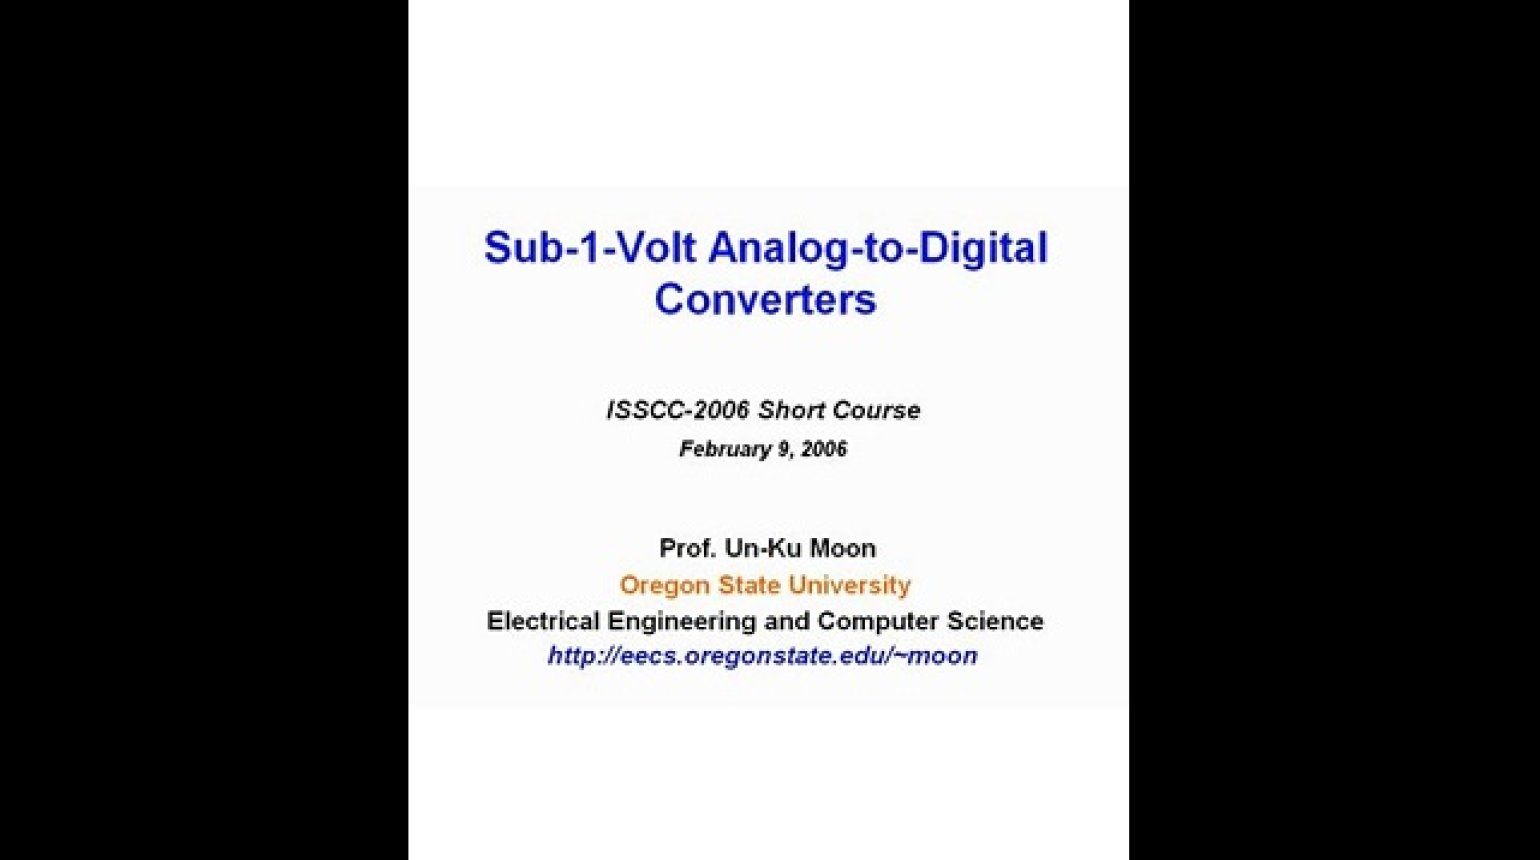 Sub 1 Volt Analog to Digital Converters Video